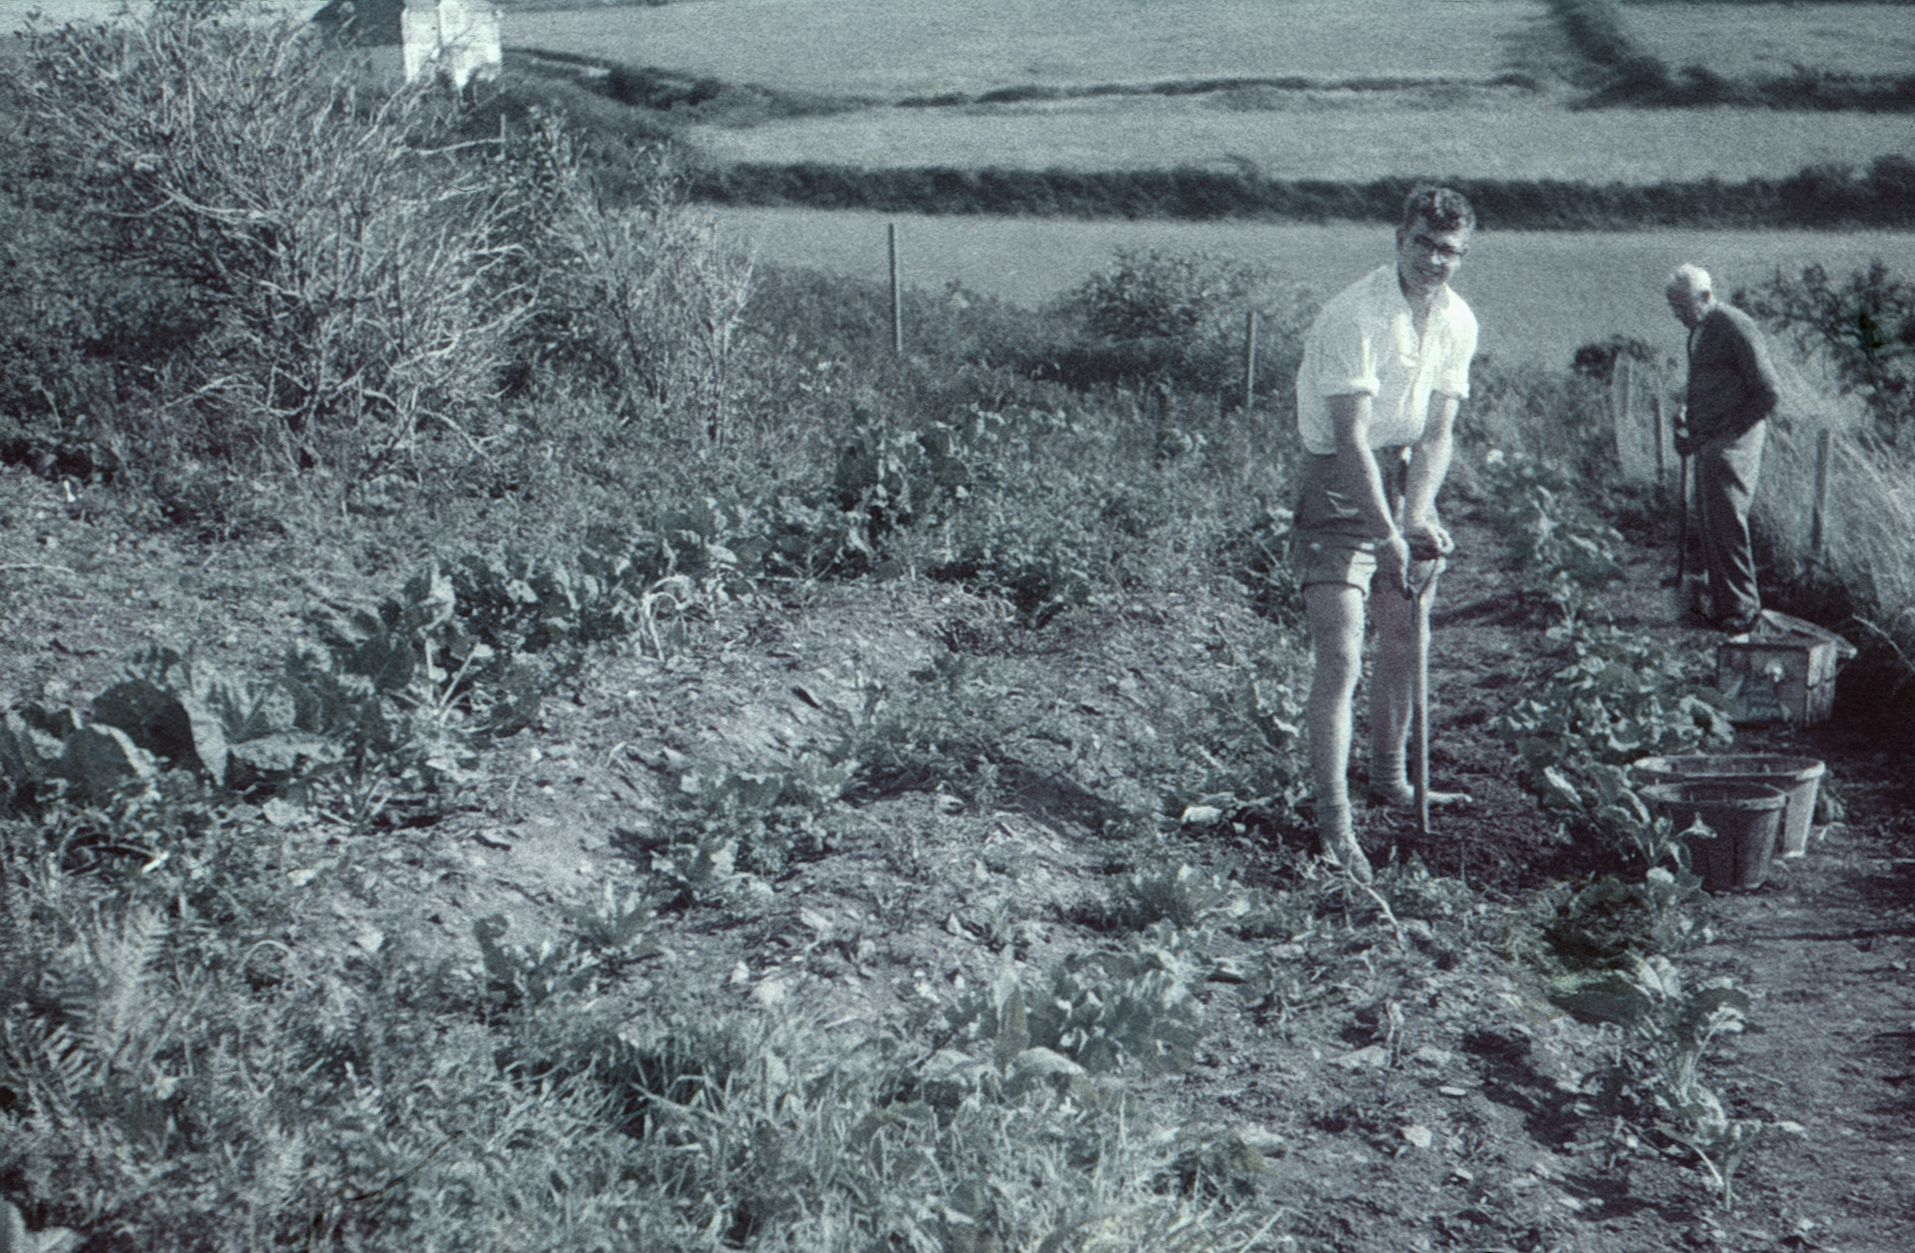 Very faded picture of a man gardening